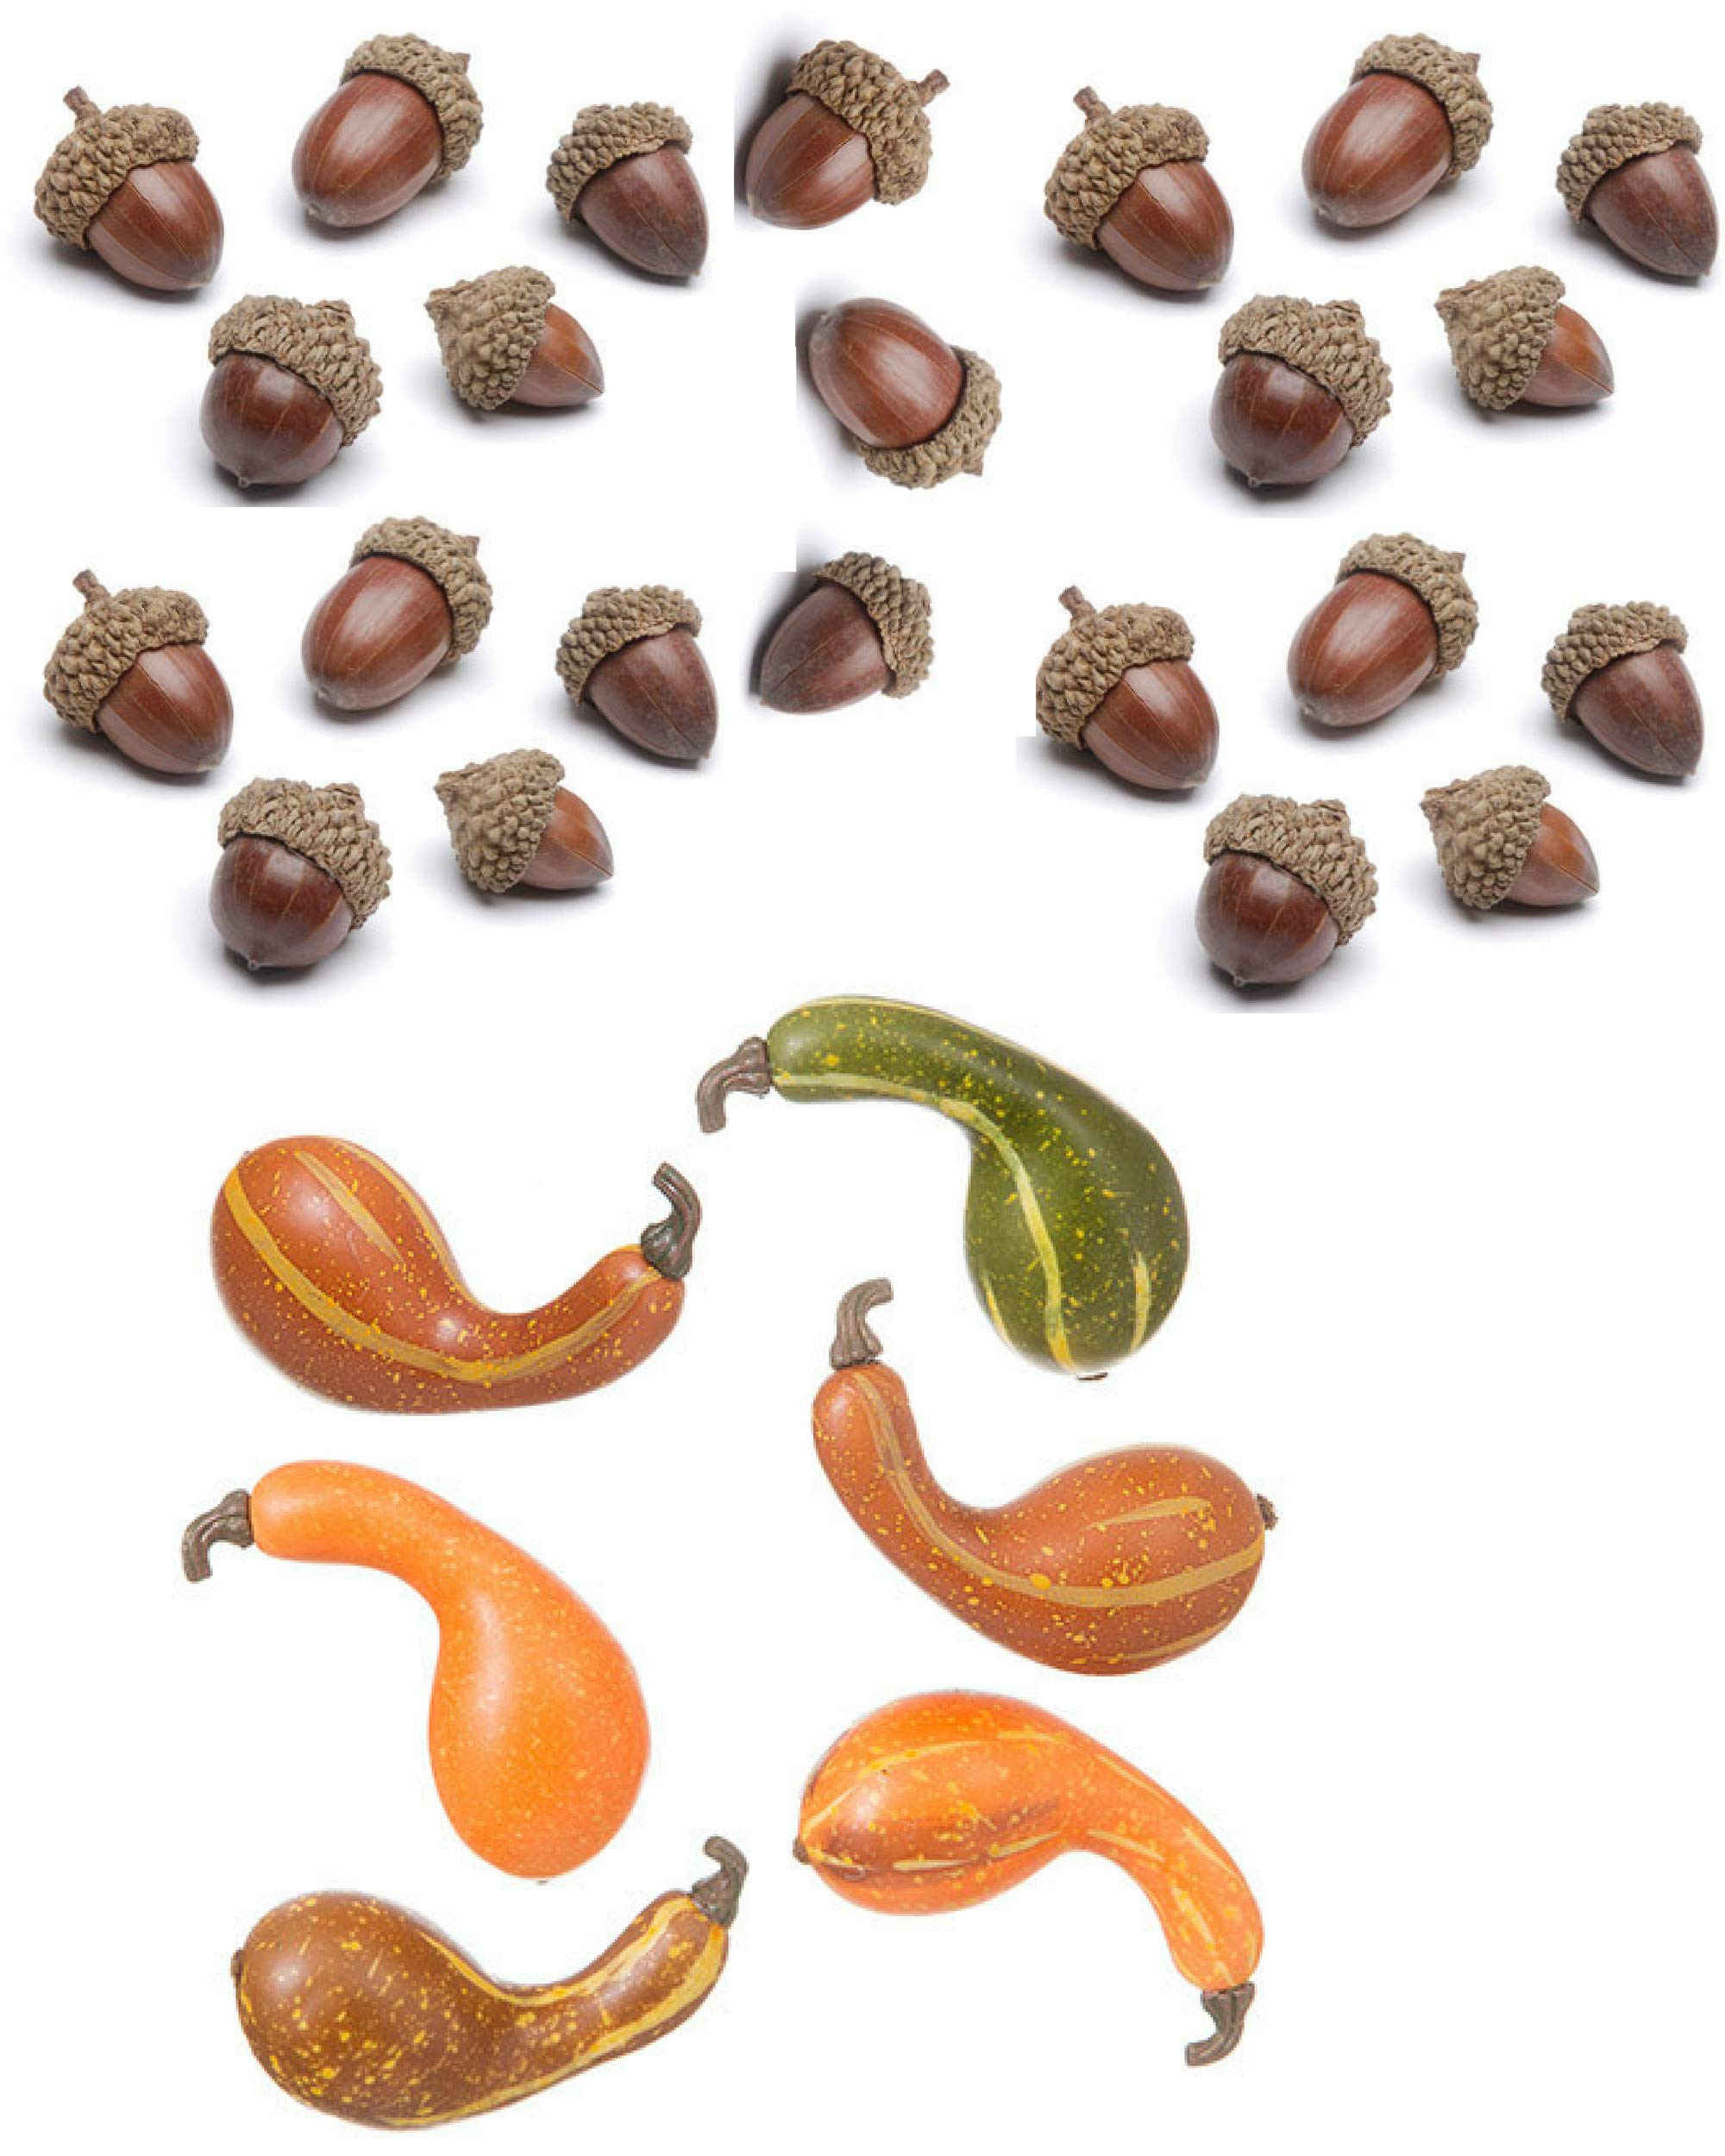 Fall Harvest Decorations Mini Gourds and Acorns Table Scatter Vase Filler Autumn Decor (2 Pack)